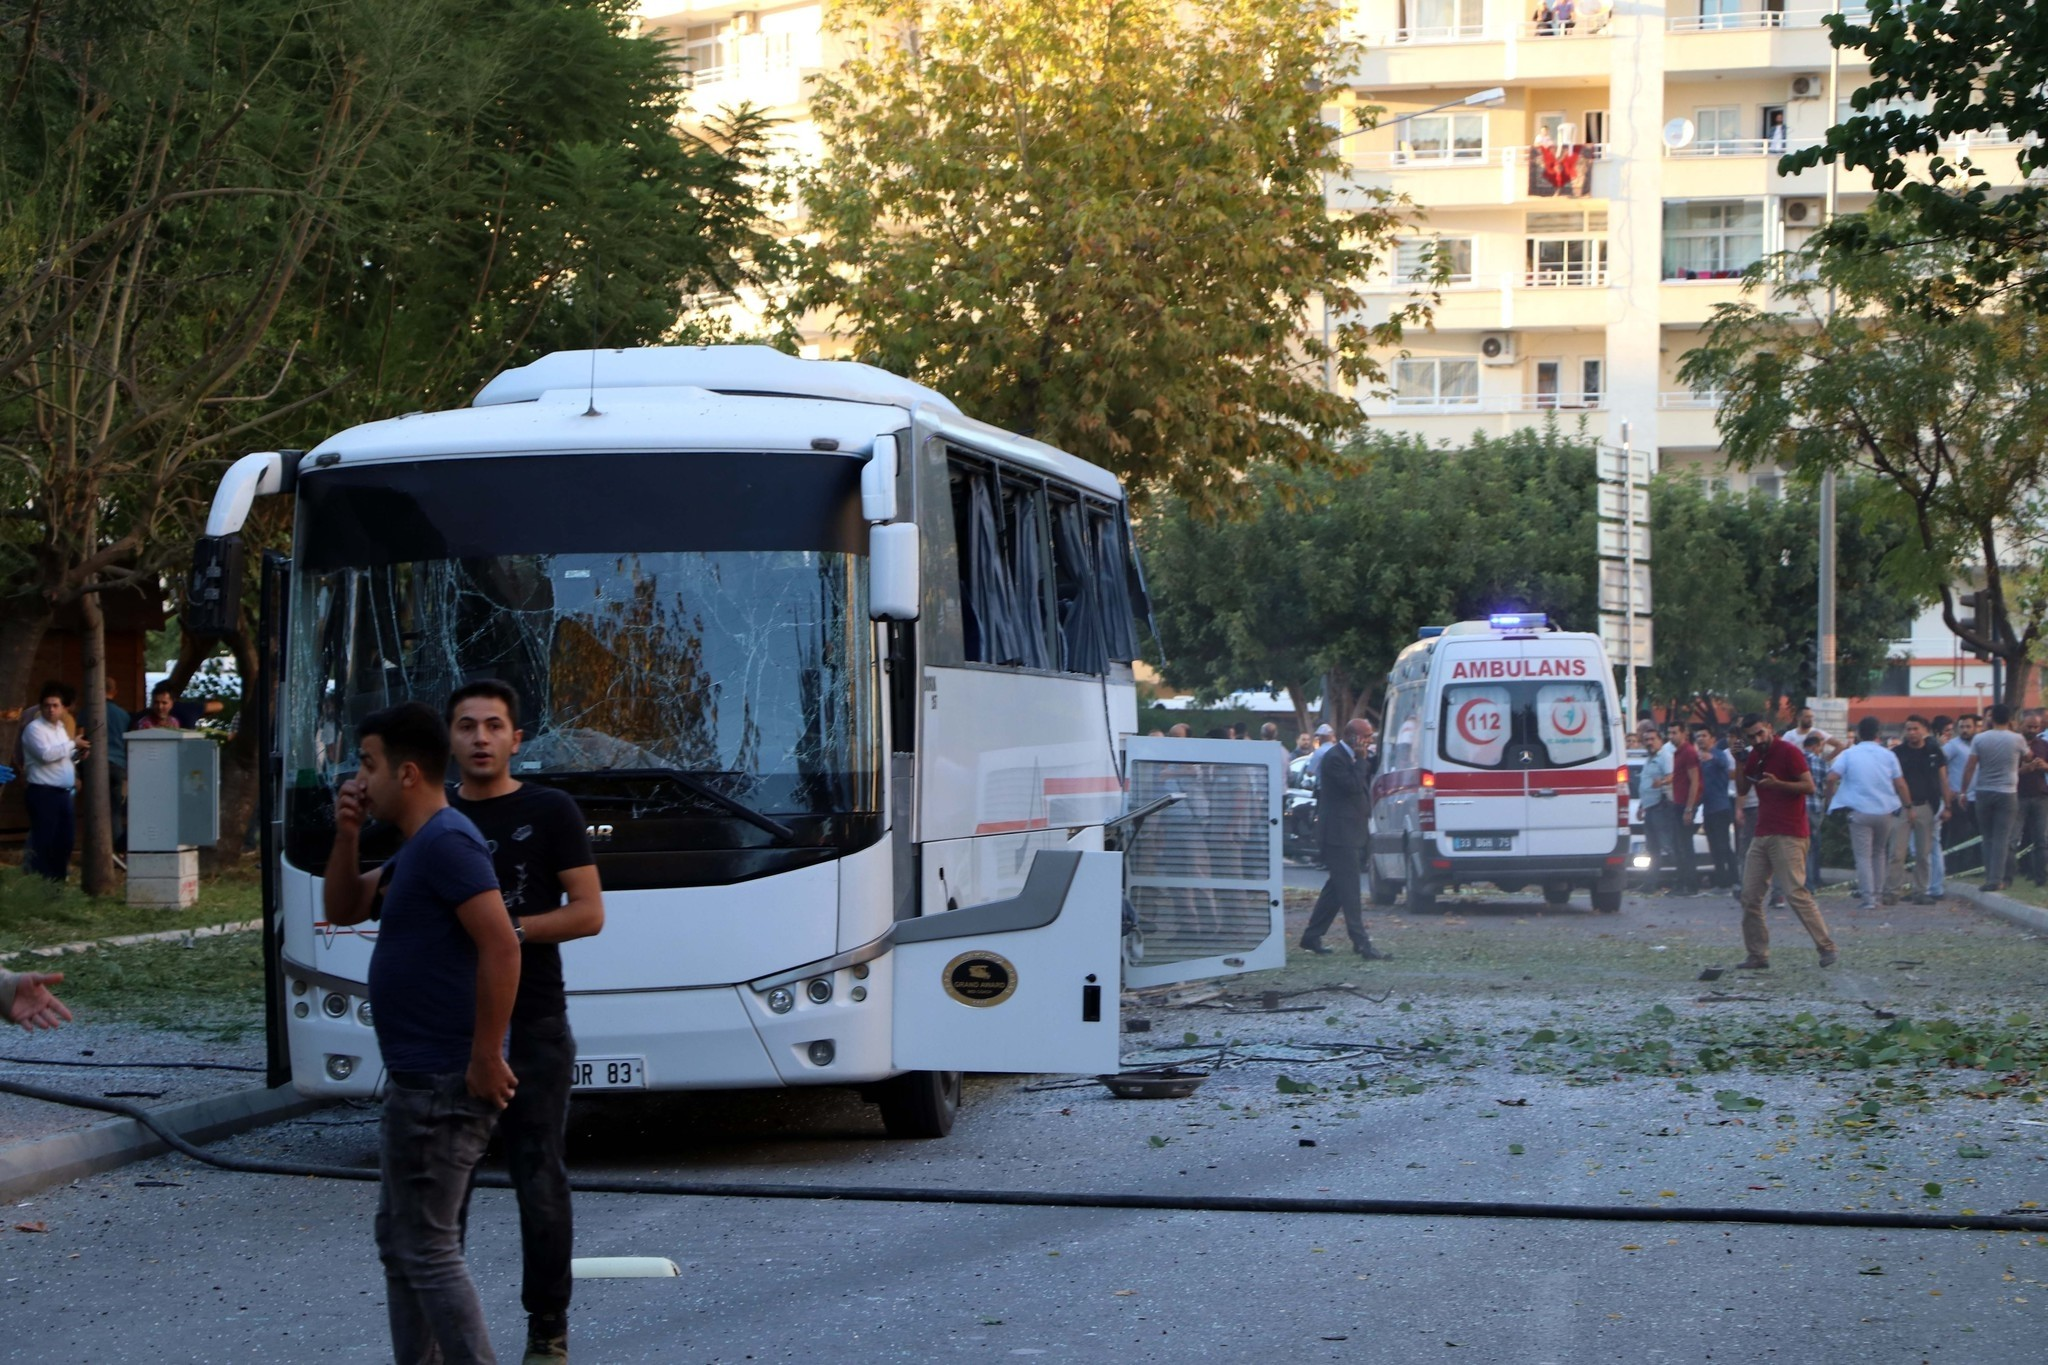 Photo shows the police shuttle bus that was targeted in the attack. (IHA Photo)